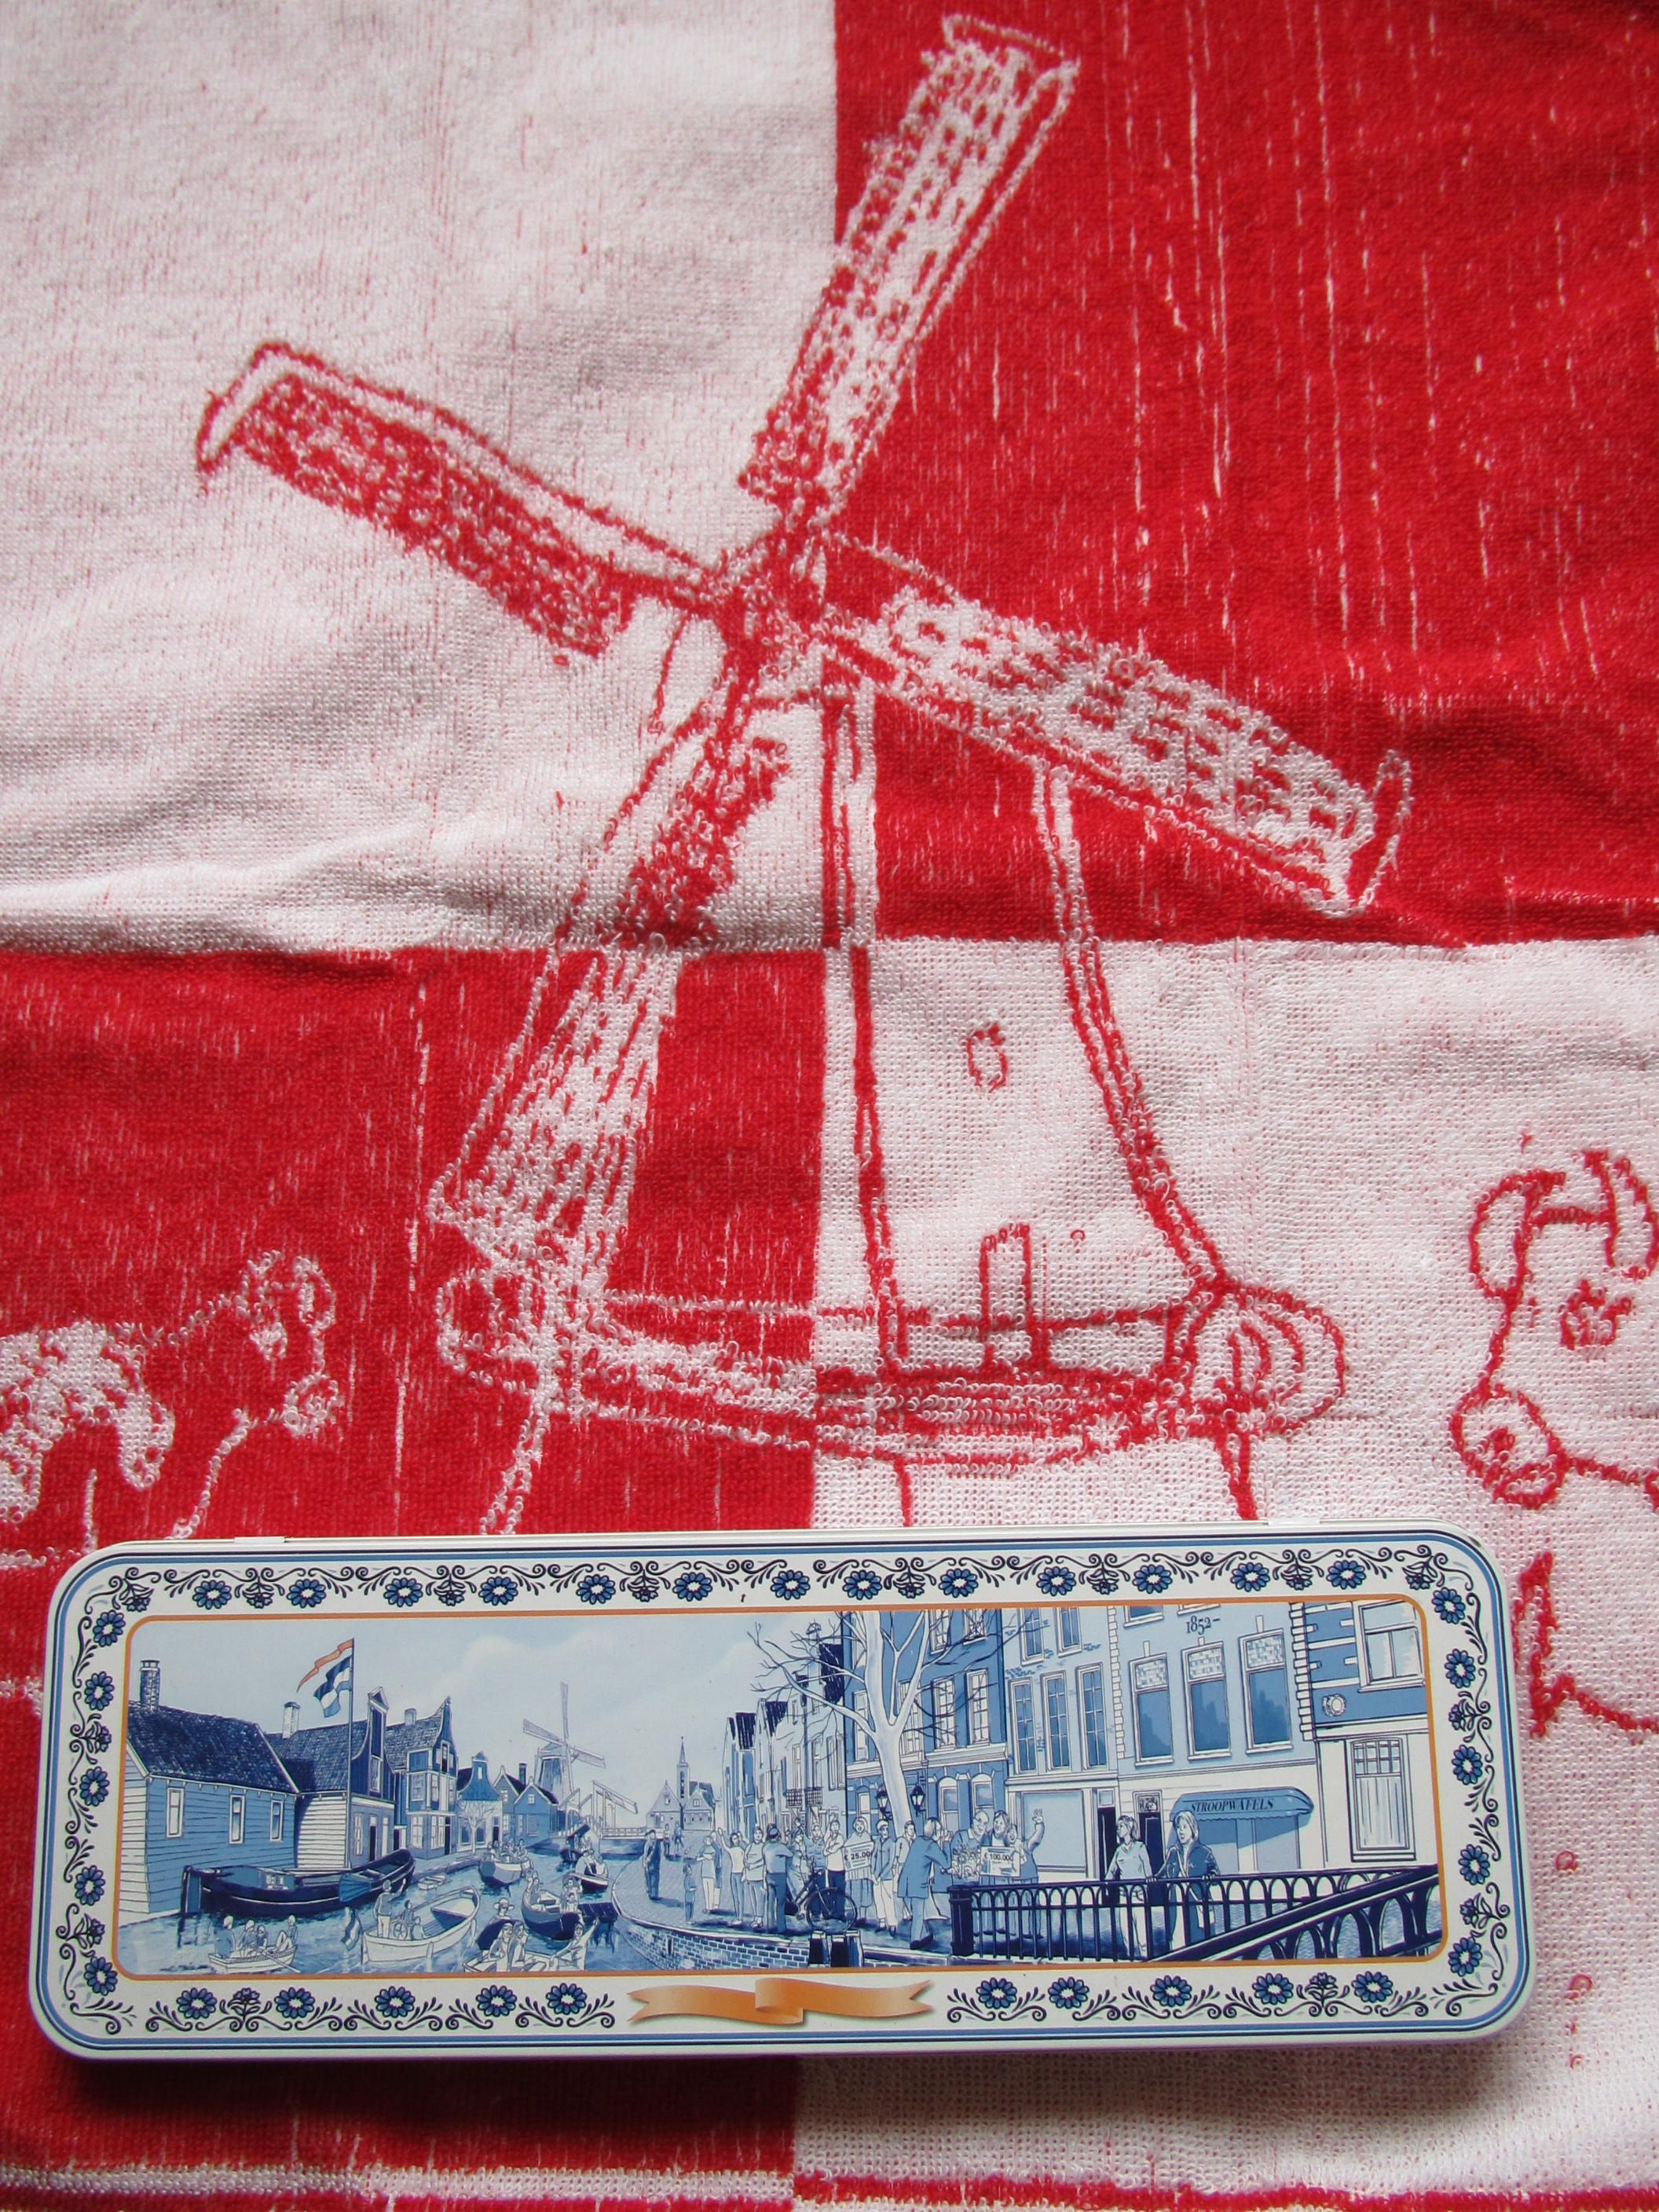 Towel And Box With Old Dutch Paintings Of Windmills And Houses Holland Souvenir The Netherlands Windmill Old Dutch Holland